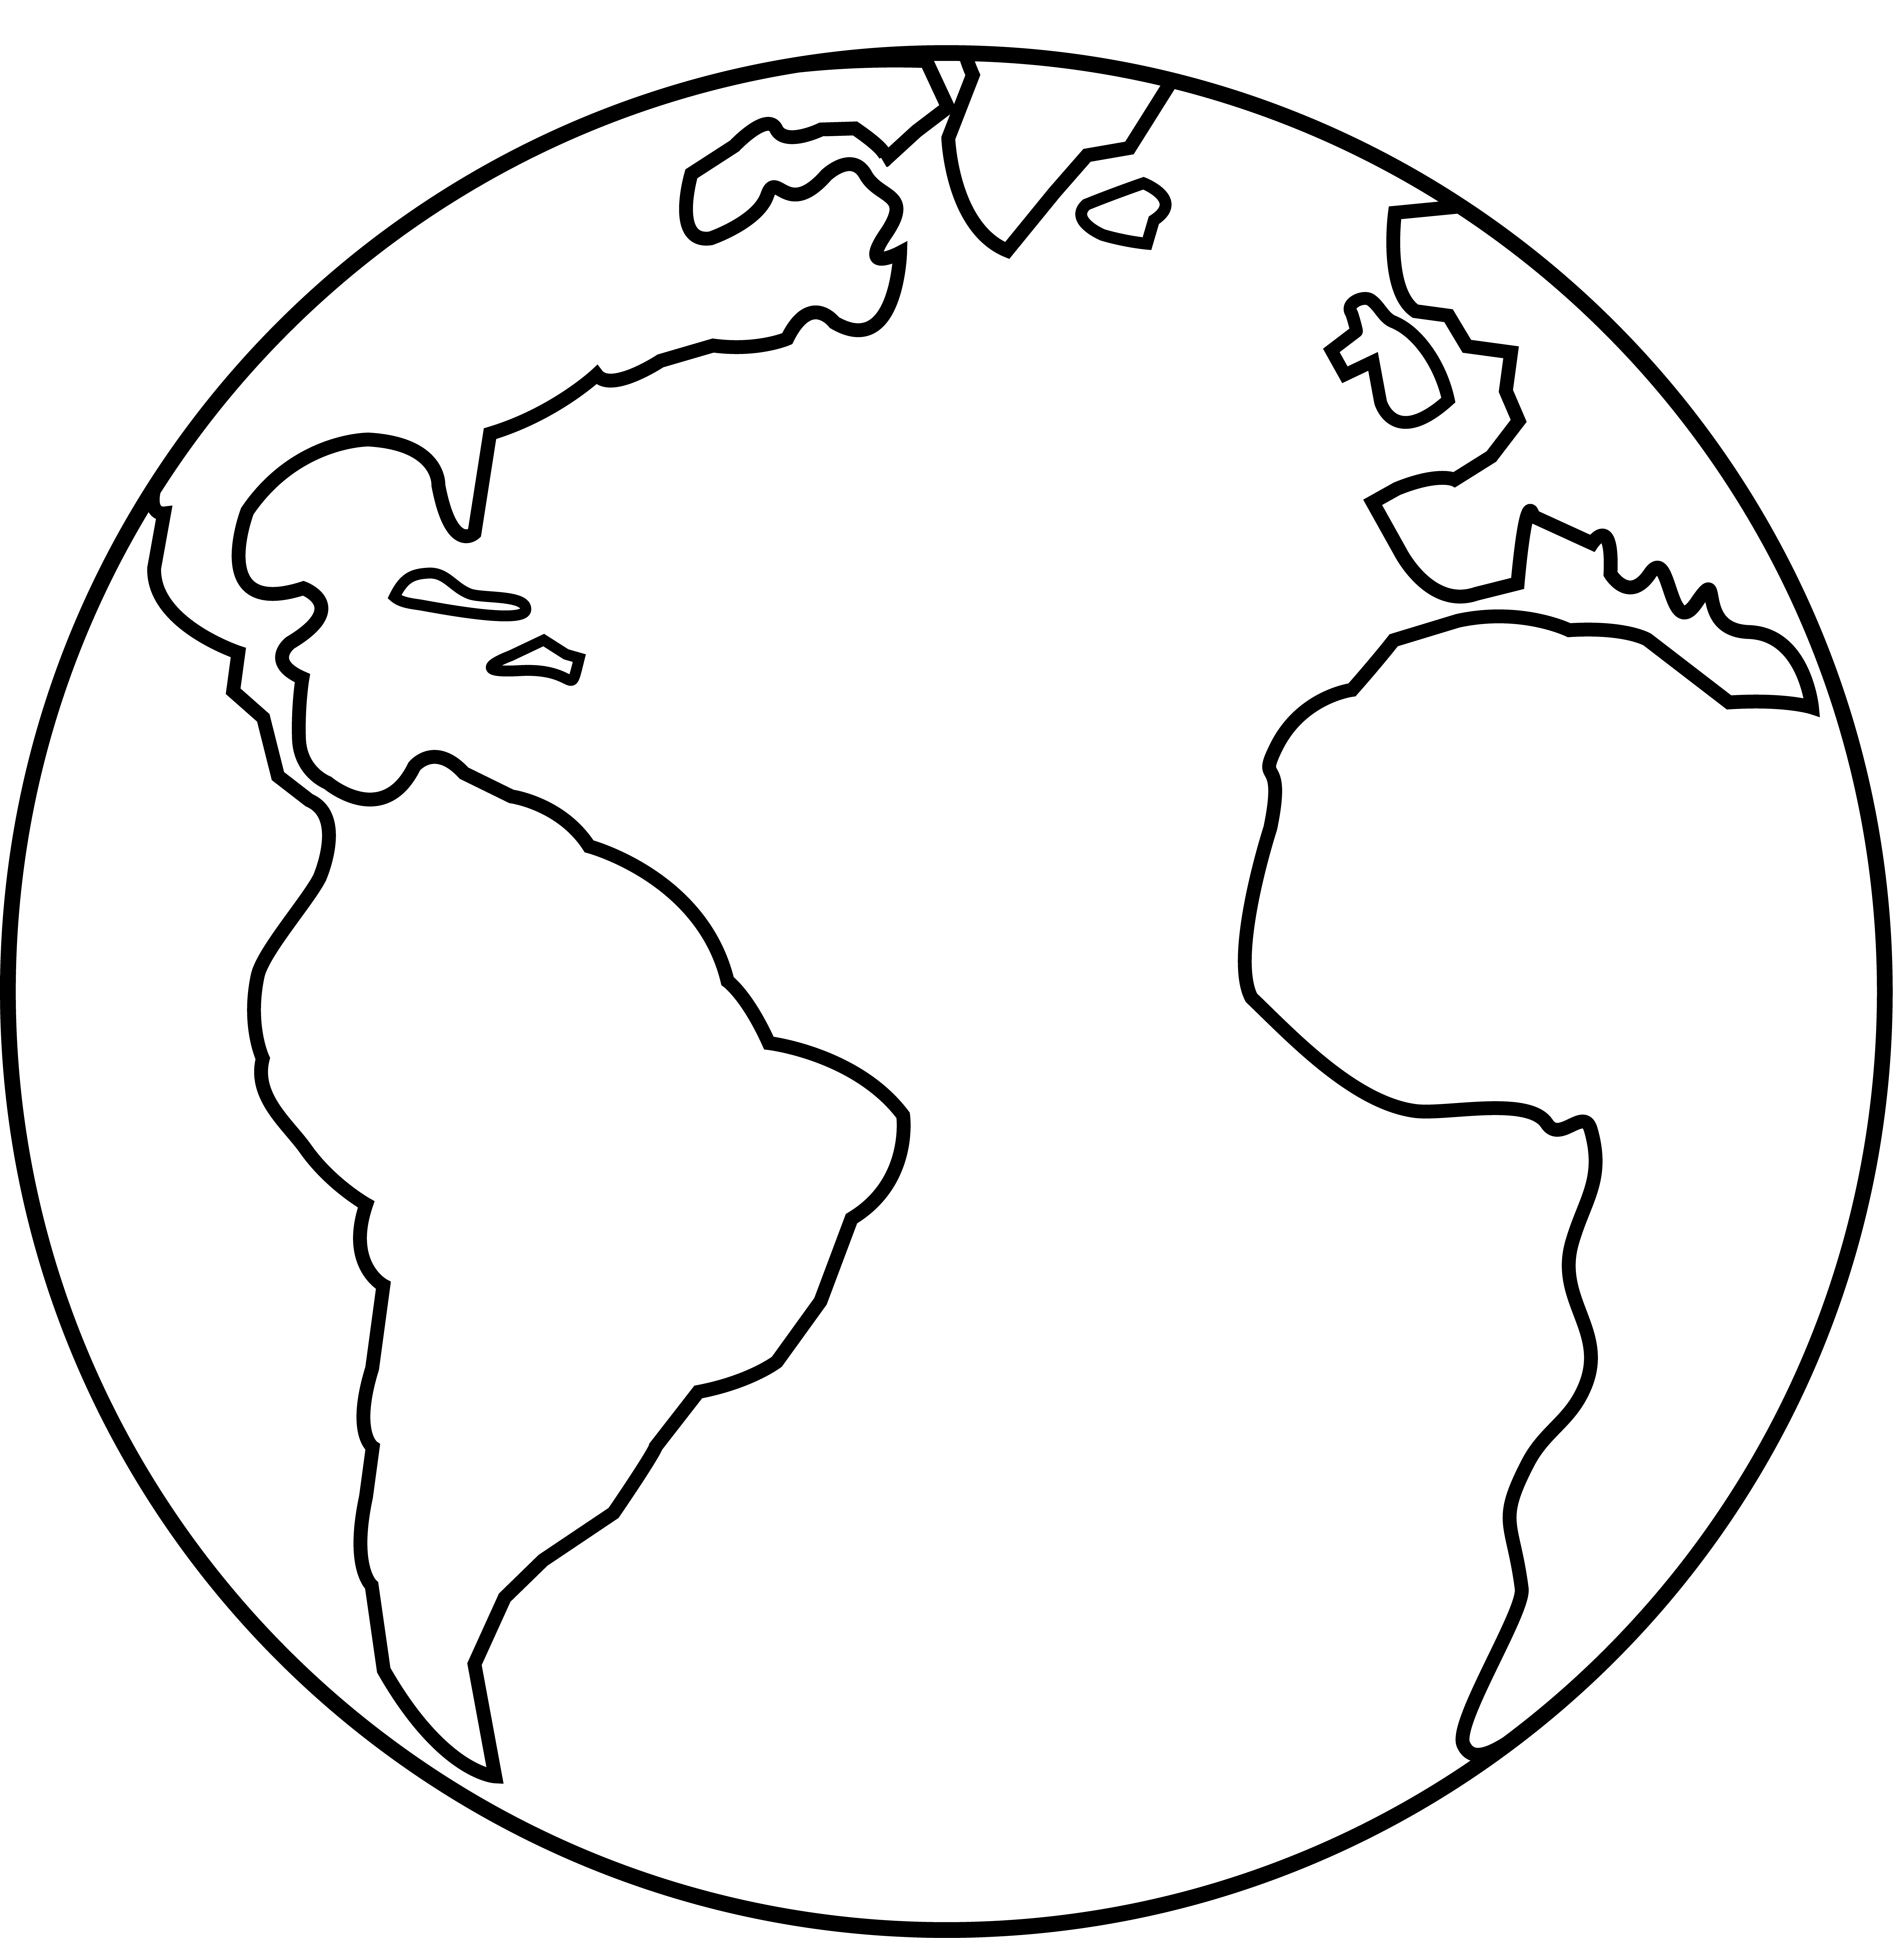 8031x8174 Colorable Earth Line Art